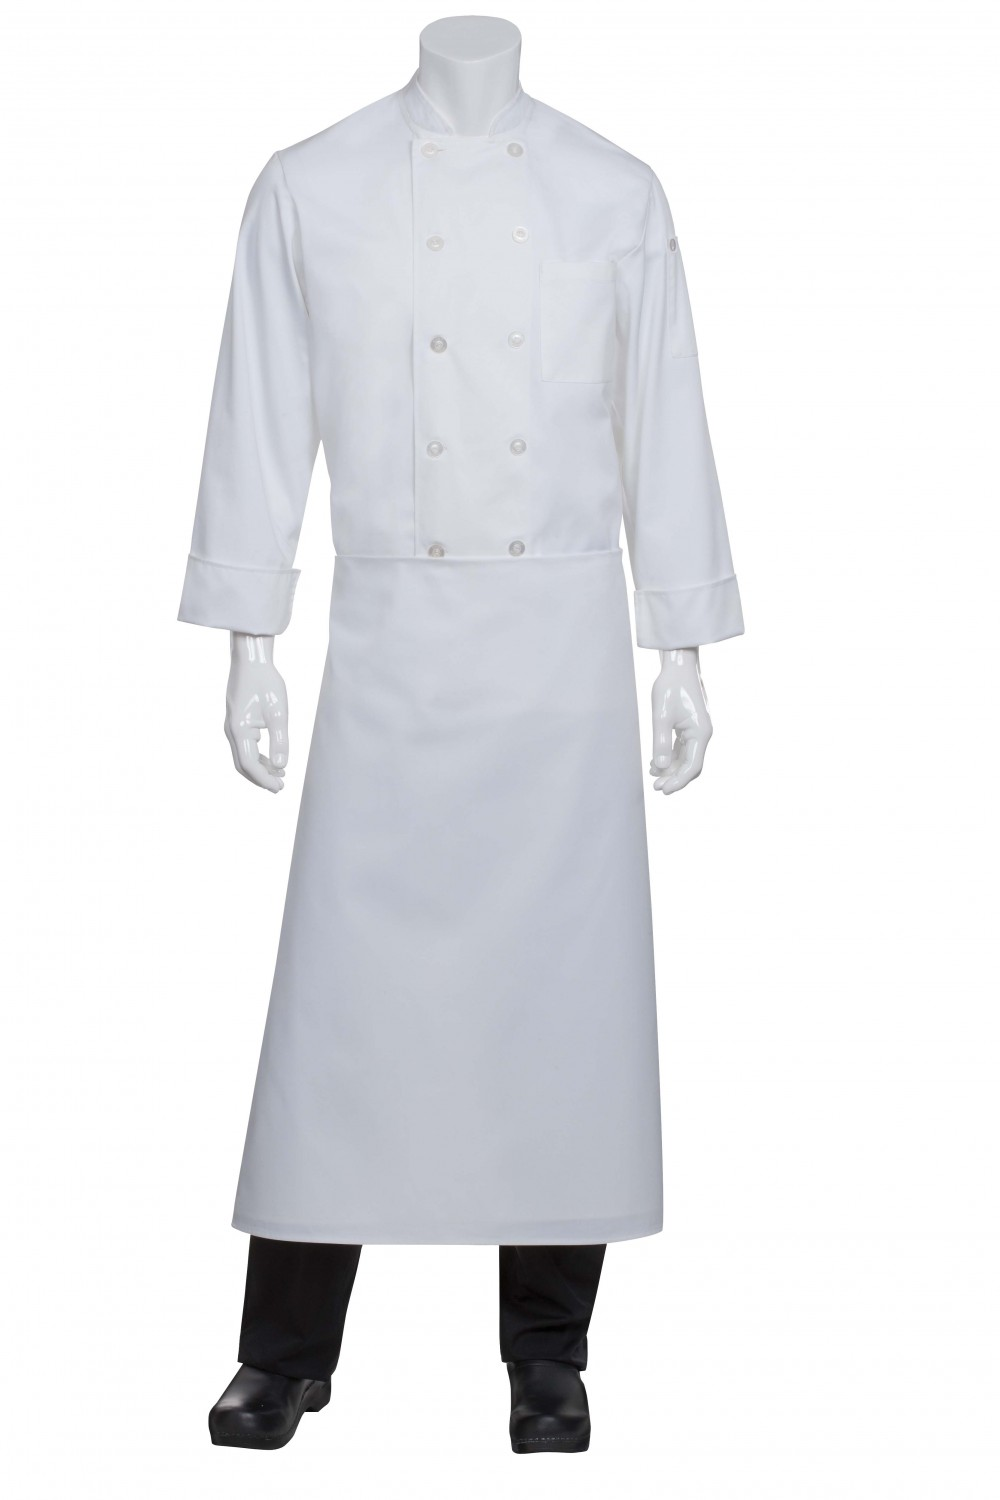 Chef Works B4LG-WHT White Long Four-Way Apron